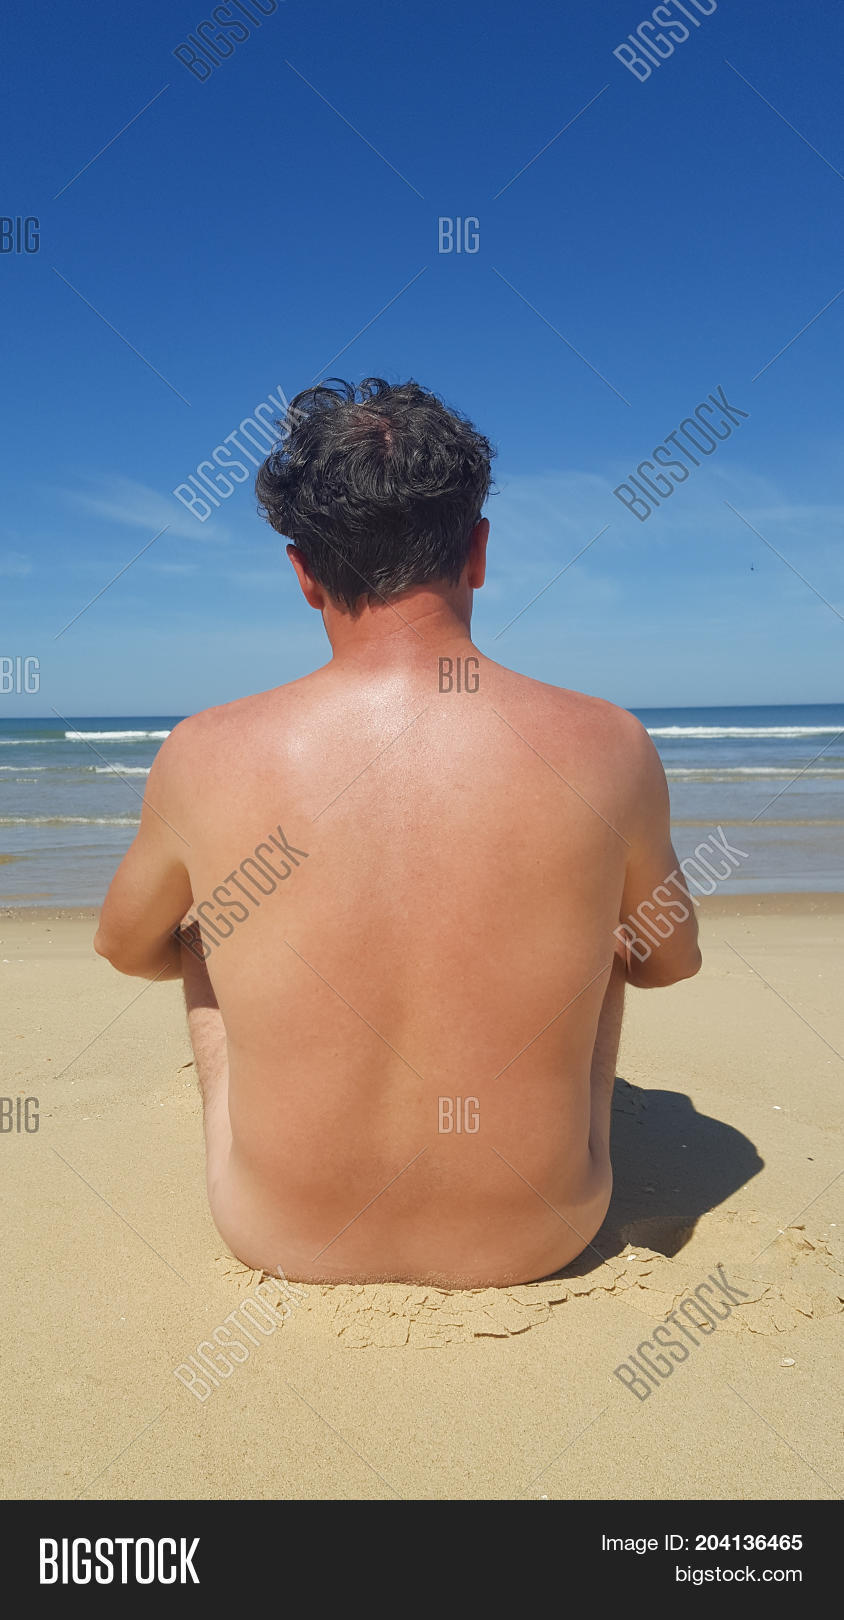 Are right, naked tan on beach for the